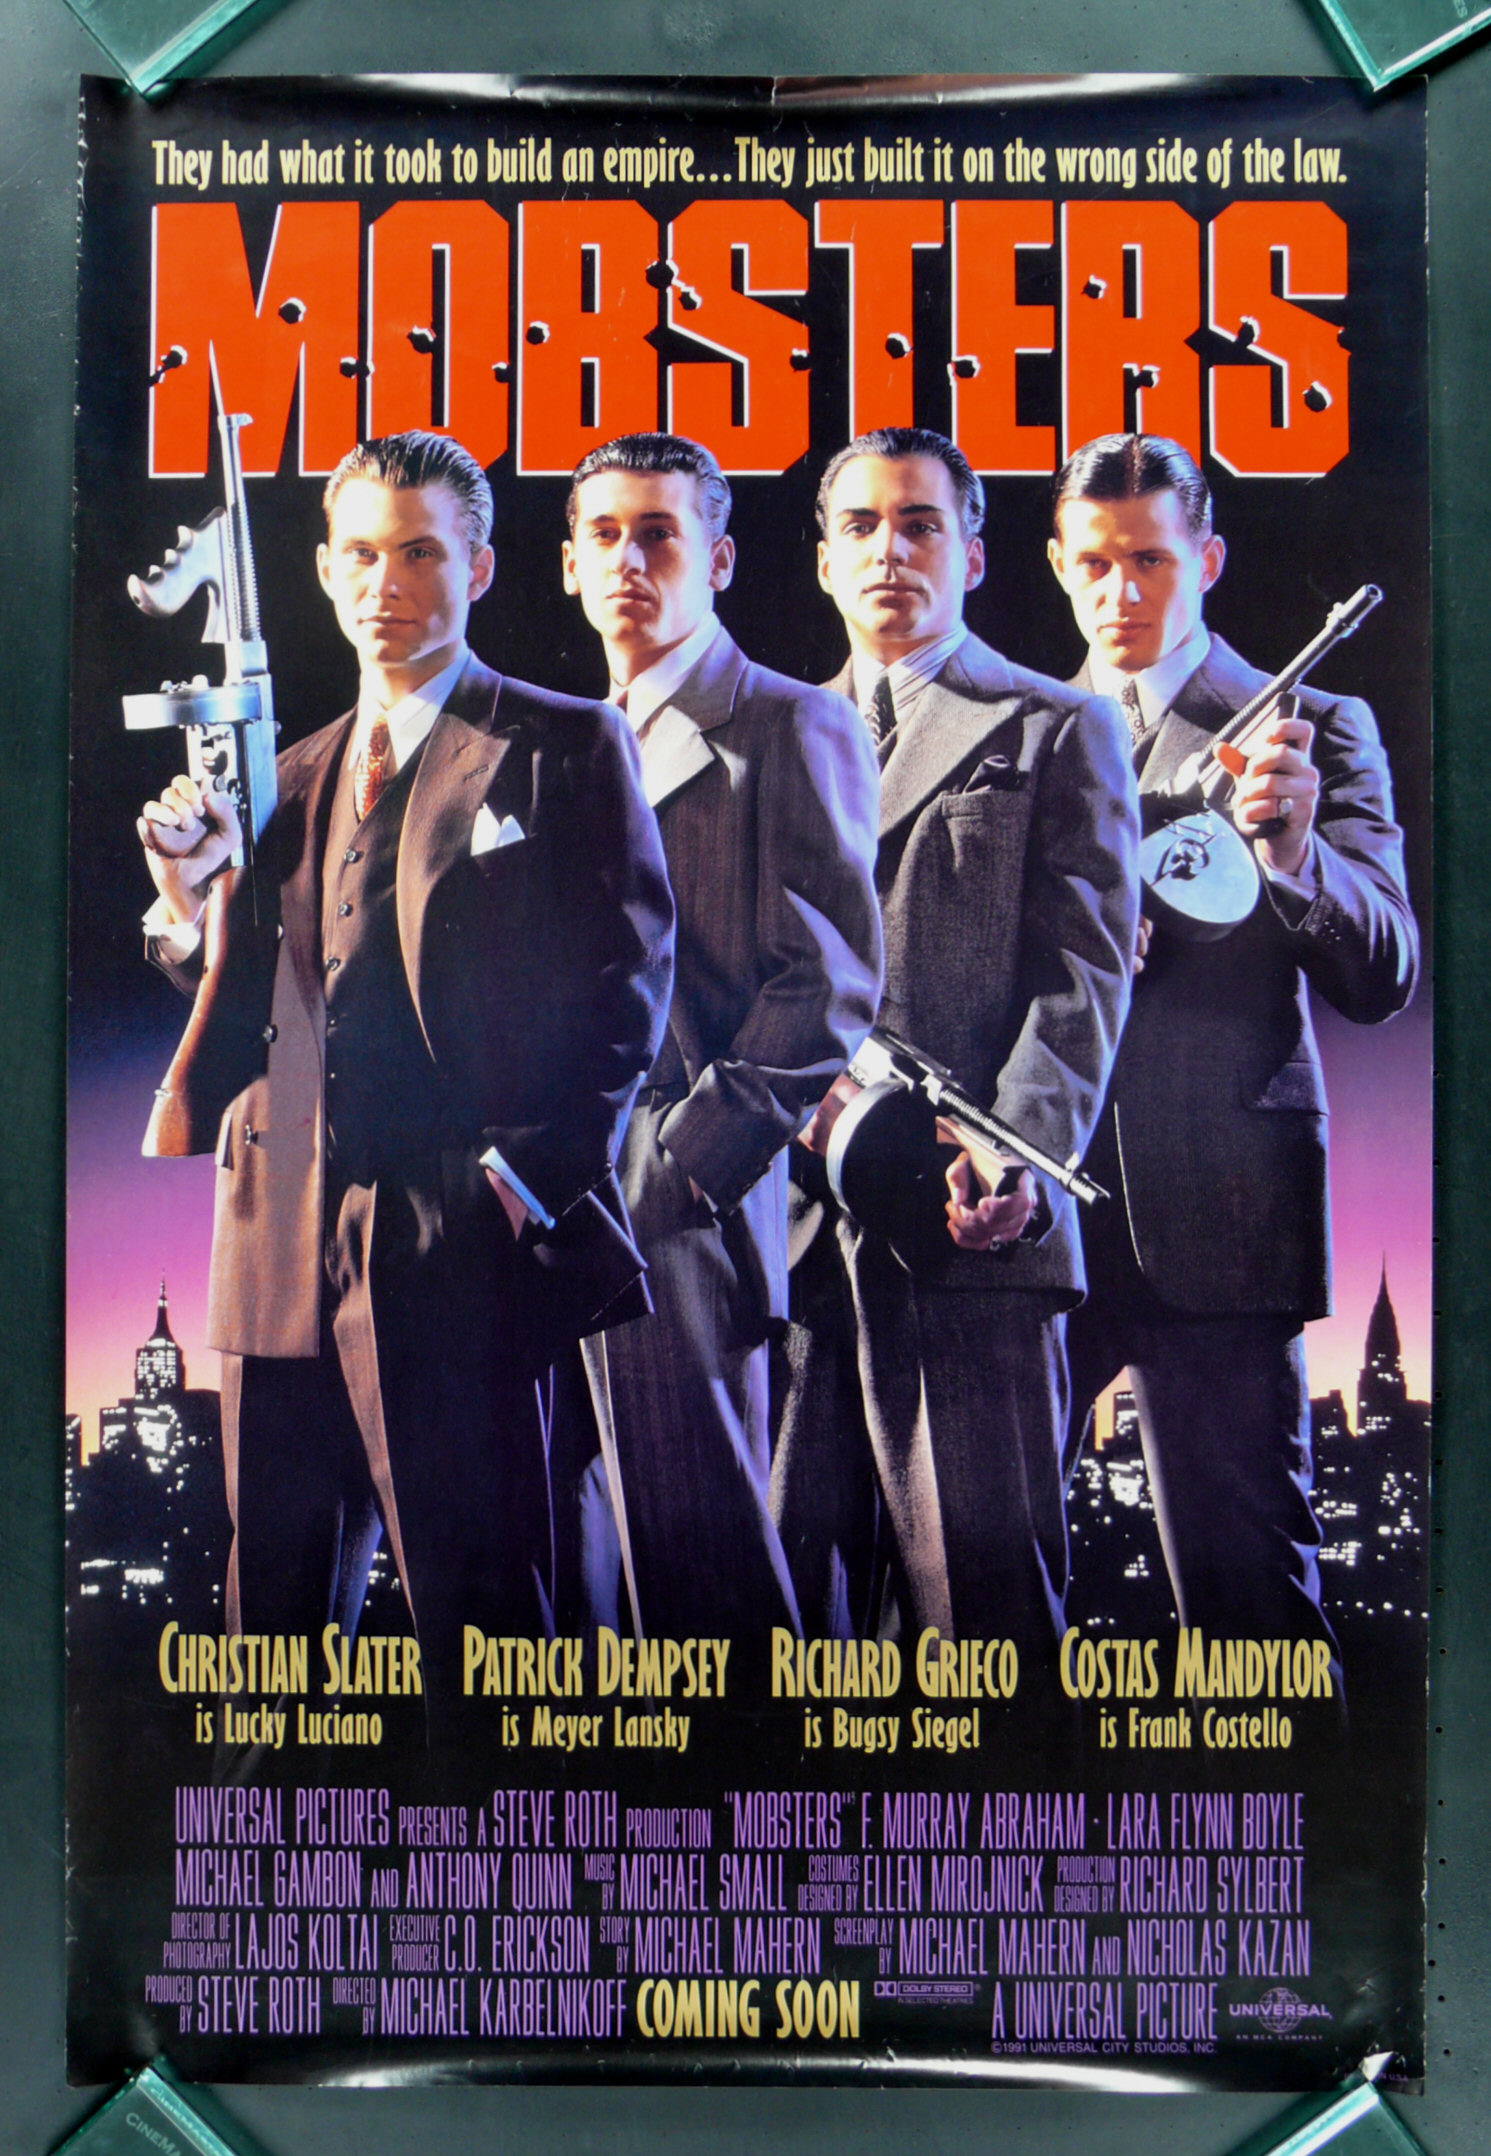 Poster 30x40 Mobsters * 1sh Advance Original Movie Poster 1991 | Ebay